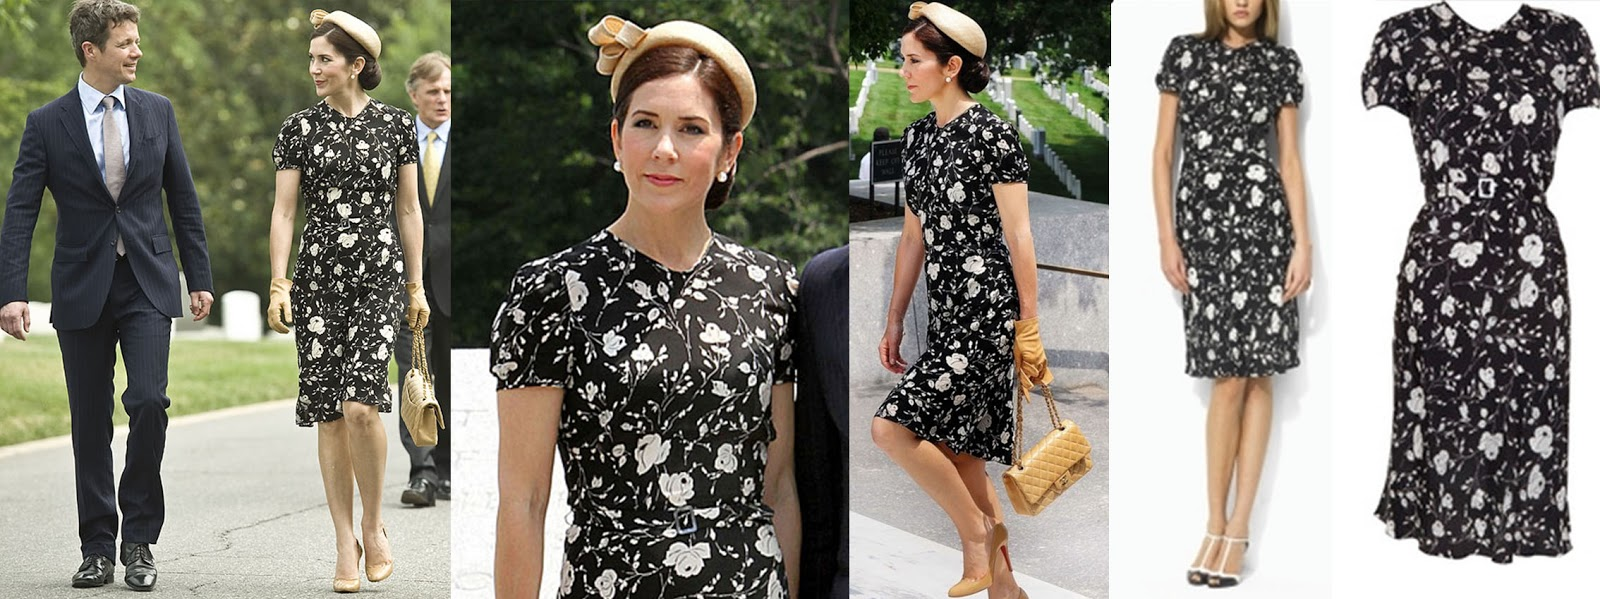 Steal Her Style: Princess Mary of Denmark in Ralph Lauren Monochrome Floral  Dress